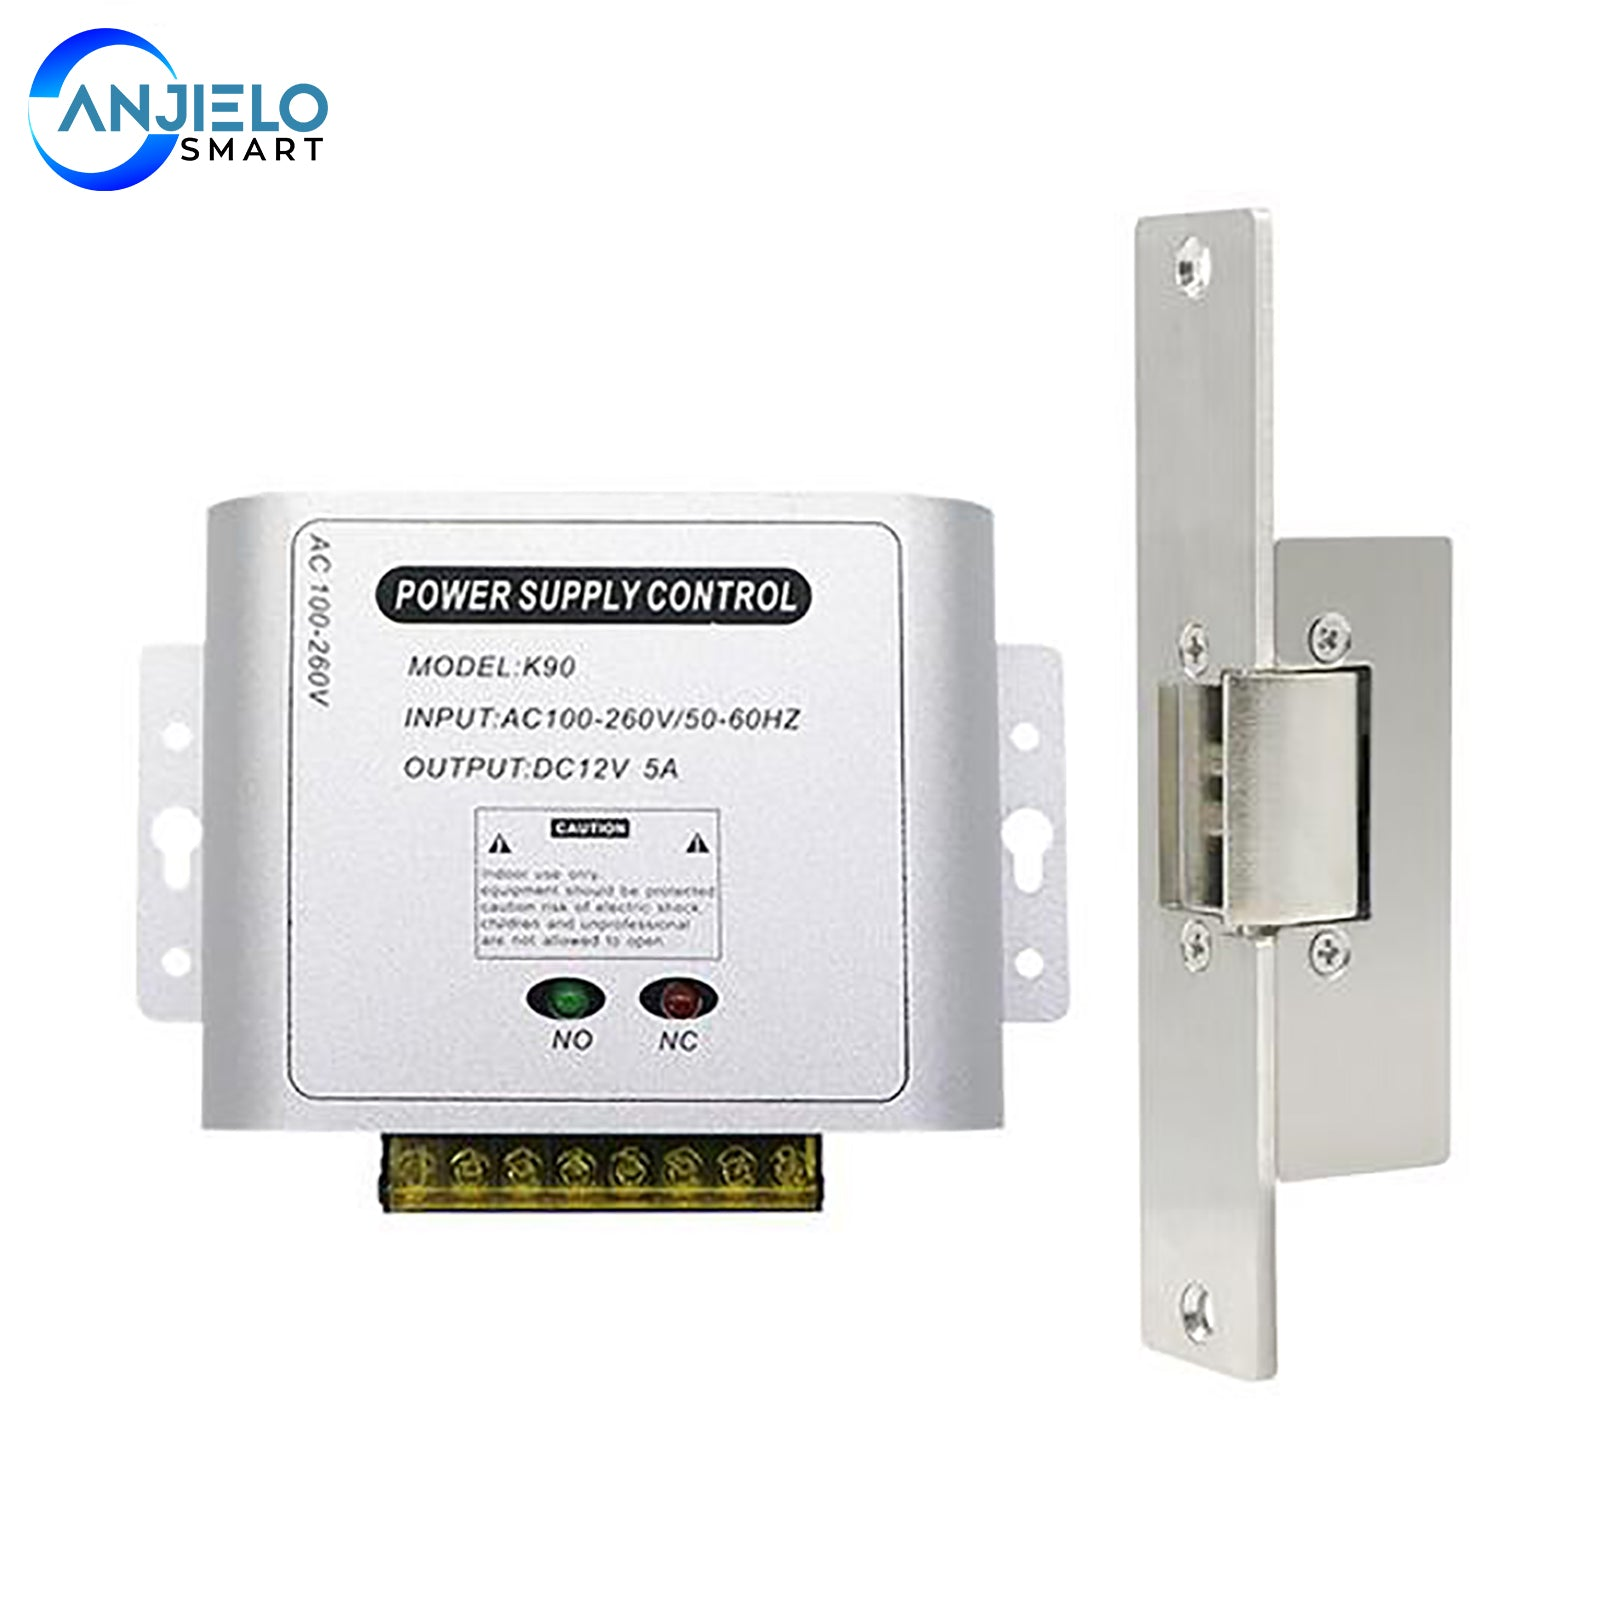 AanjieloSmart Door Access System for Home Gate Electric Power Supply Control Miniature Power/Electric Lock Power/Access Control System